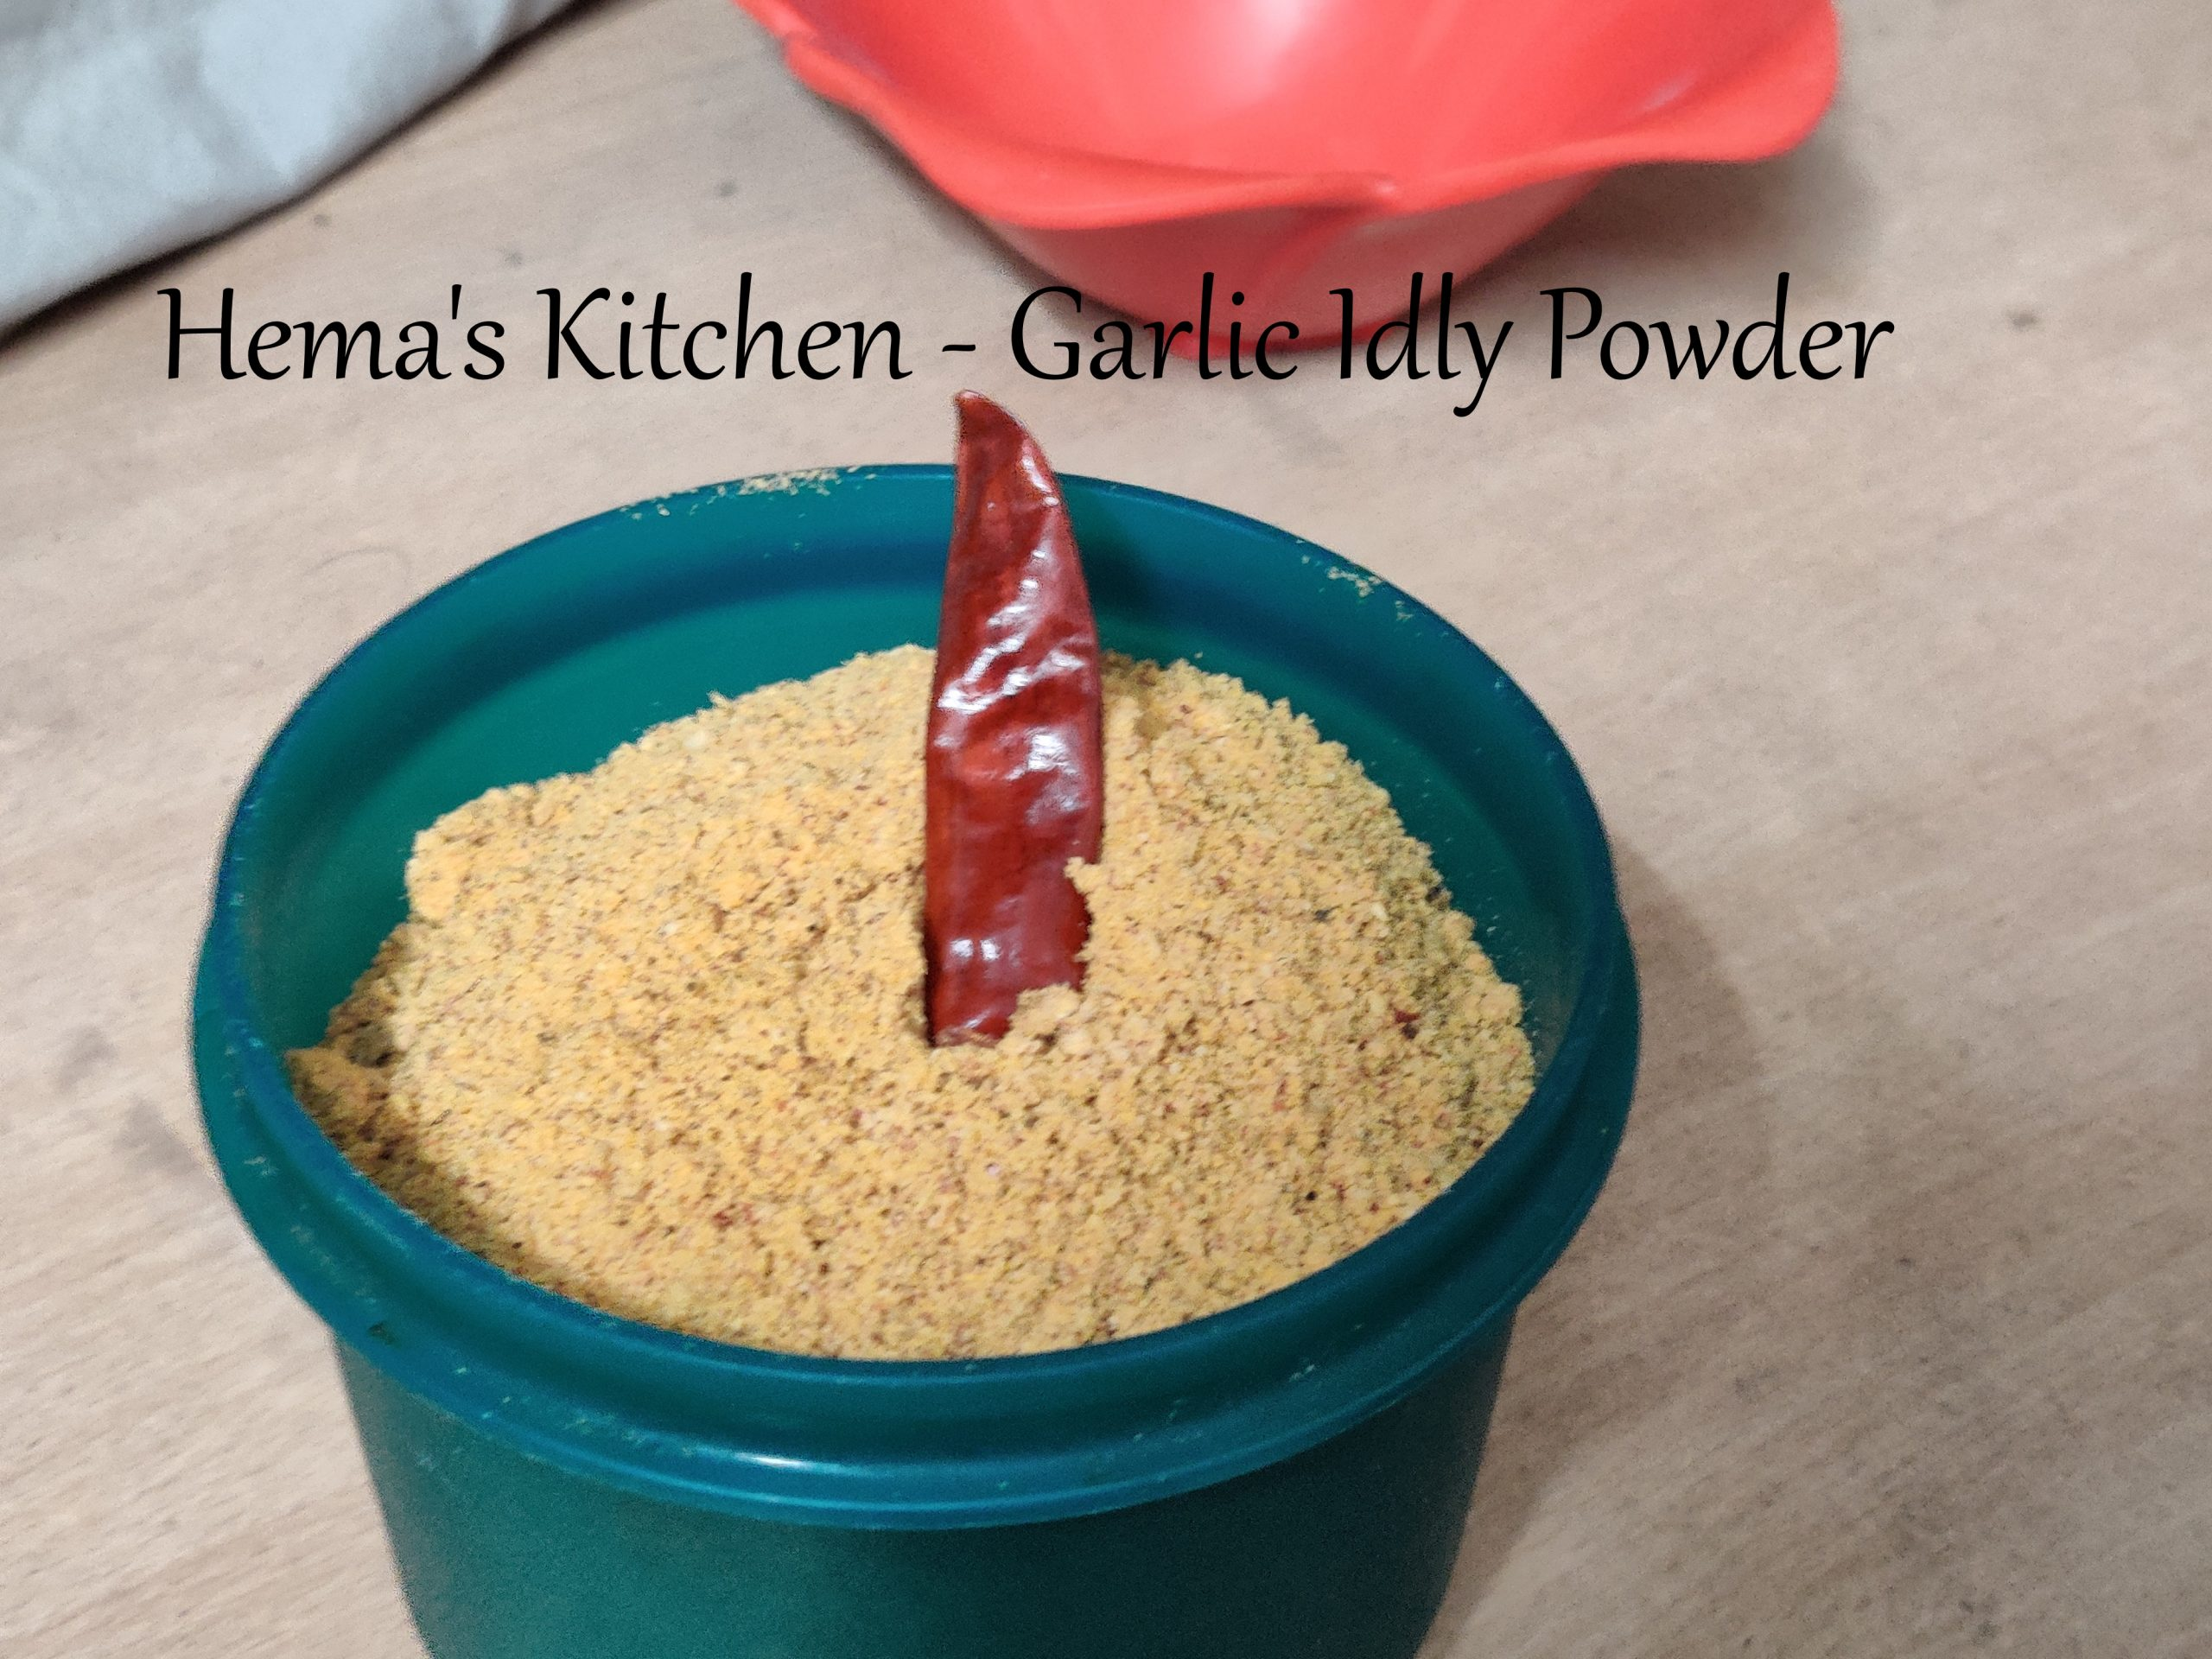 Garlic Idly Powder